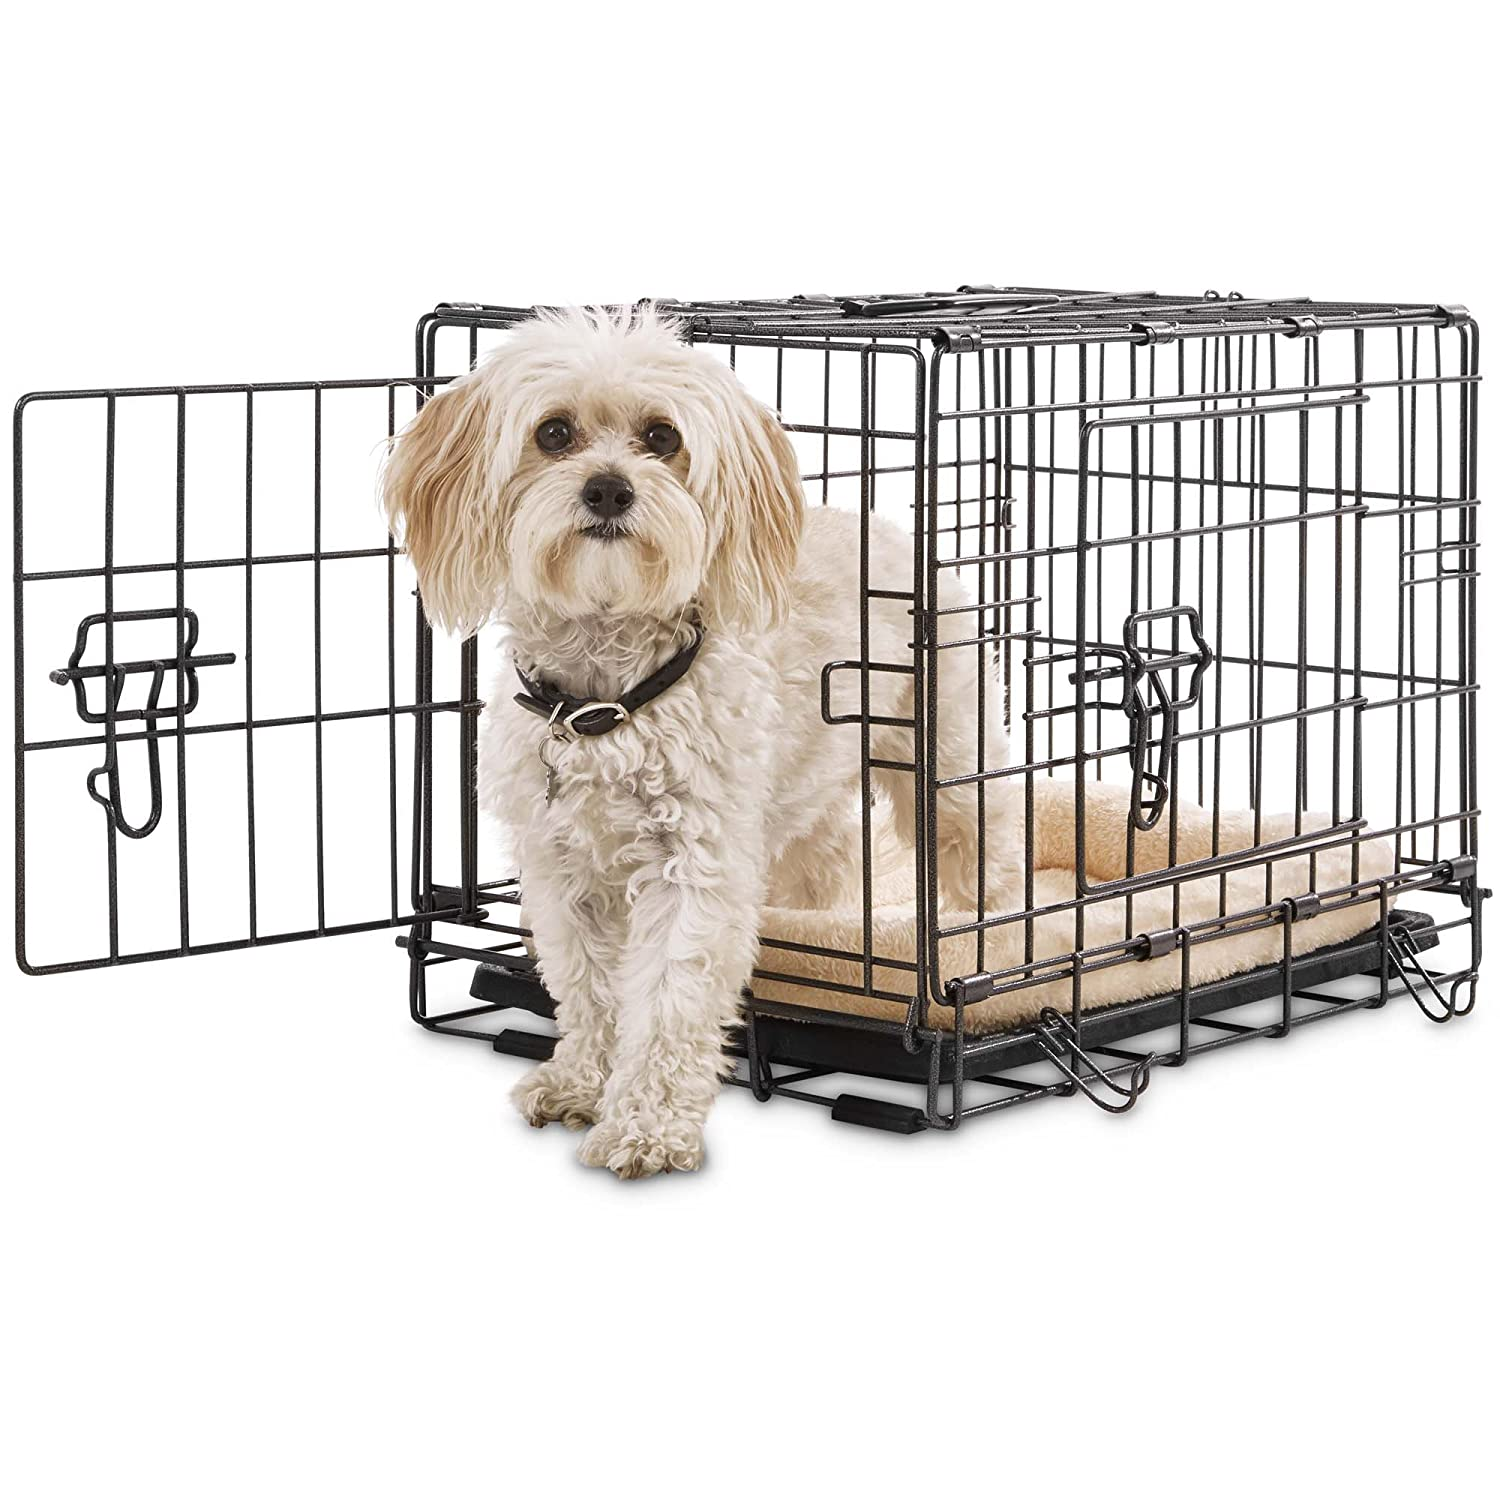 Amazon.com : Petco Premium 2-Door Dog Crate, 42\